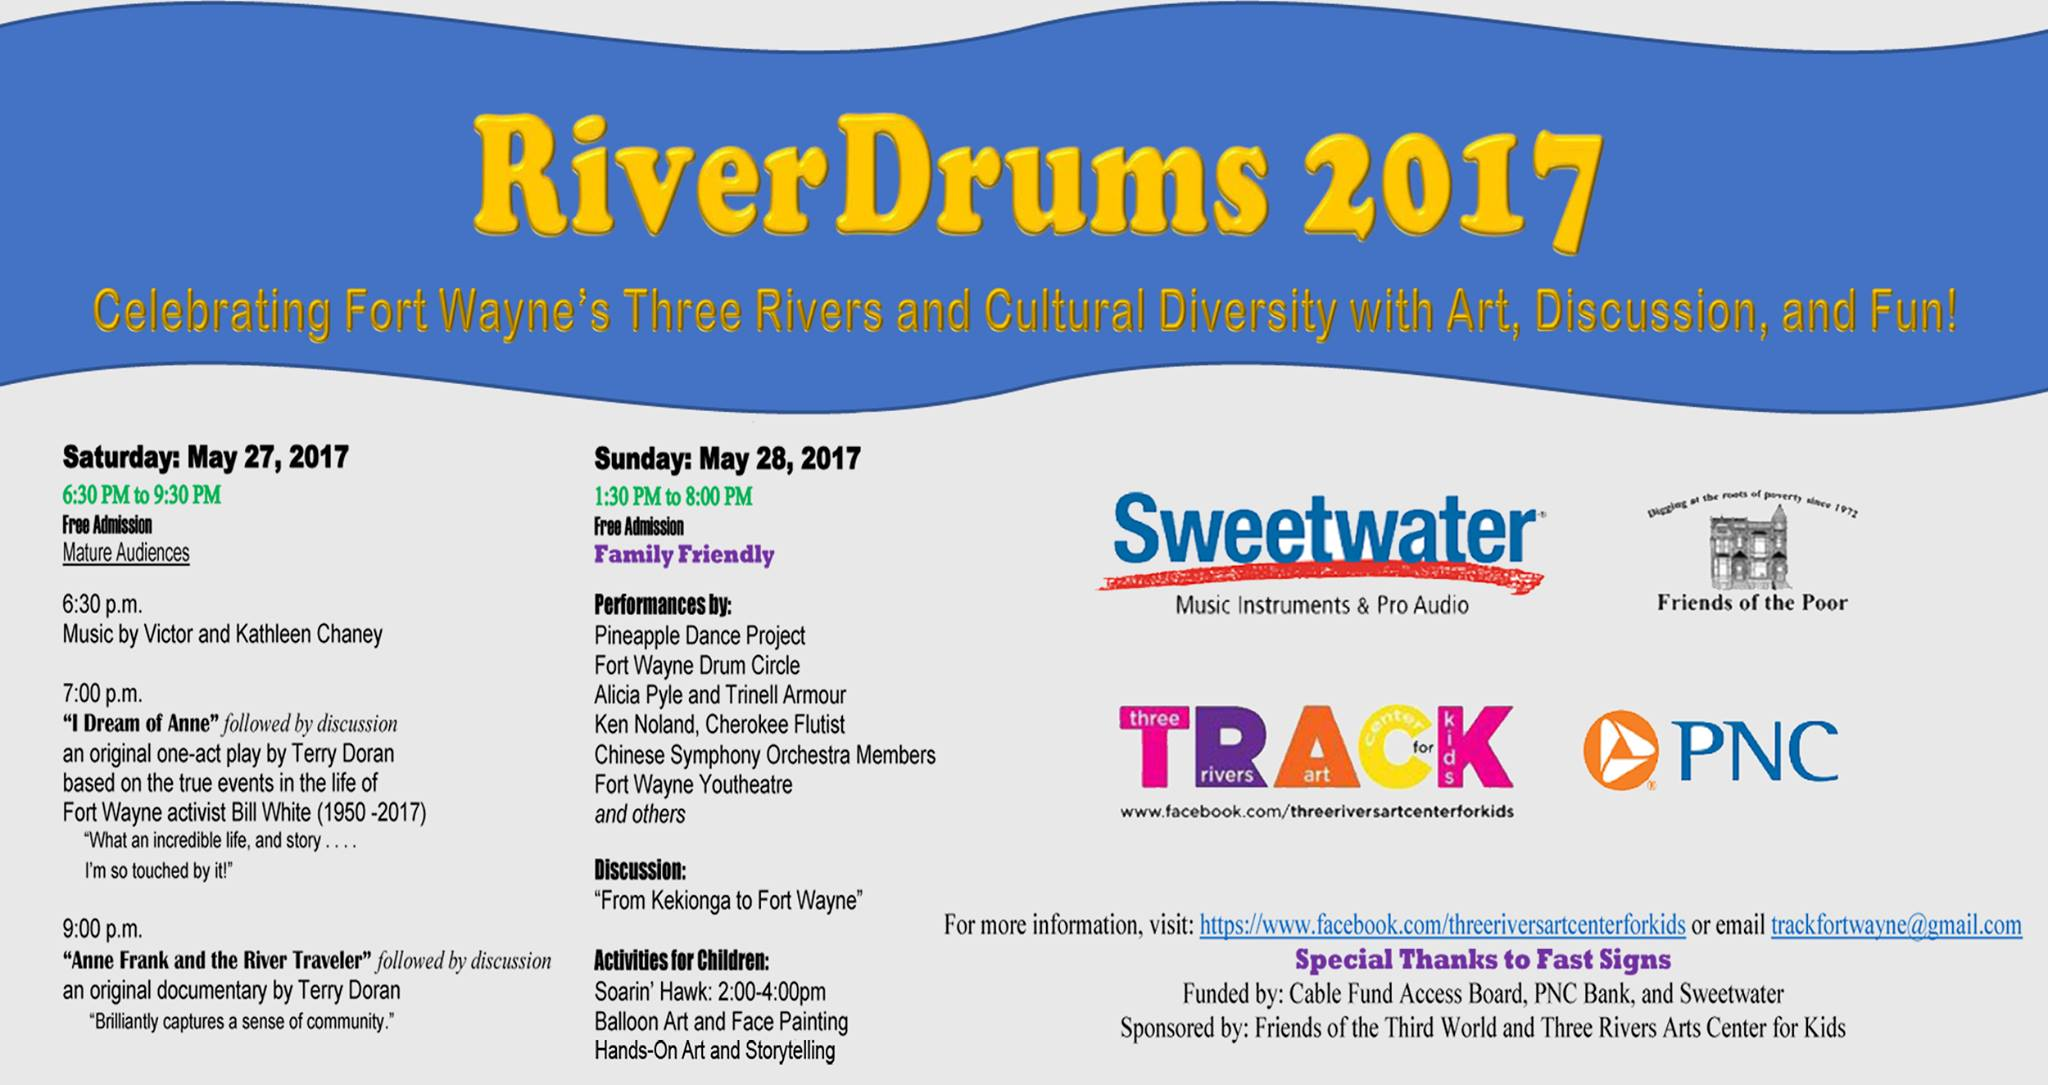 RiverDrums 2017 has a full schedule for annual event